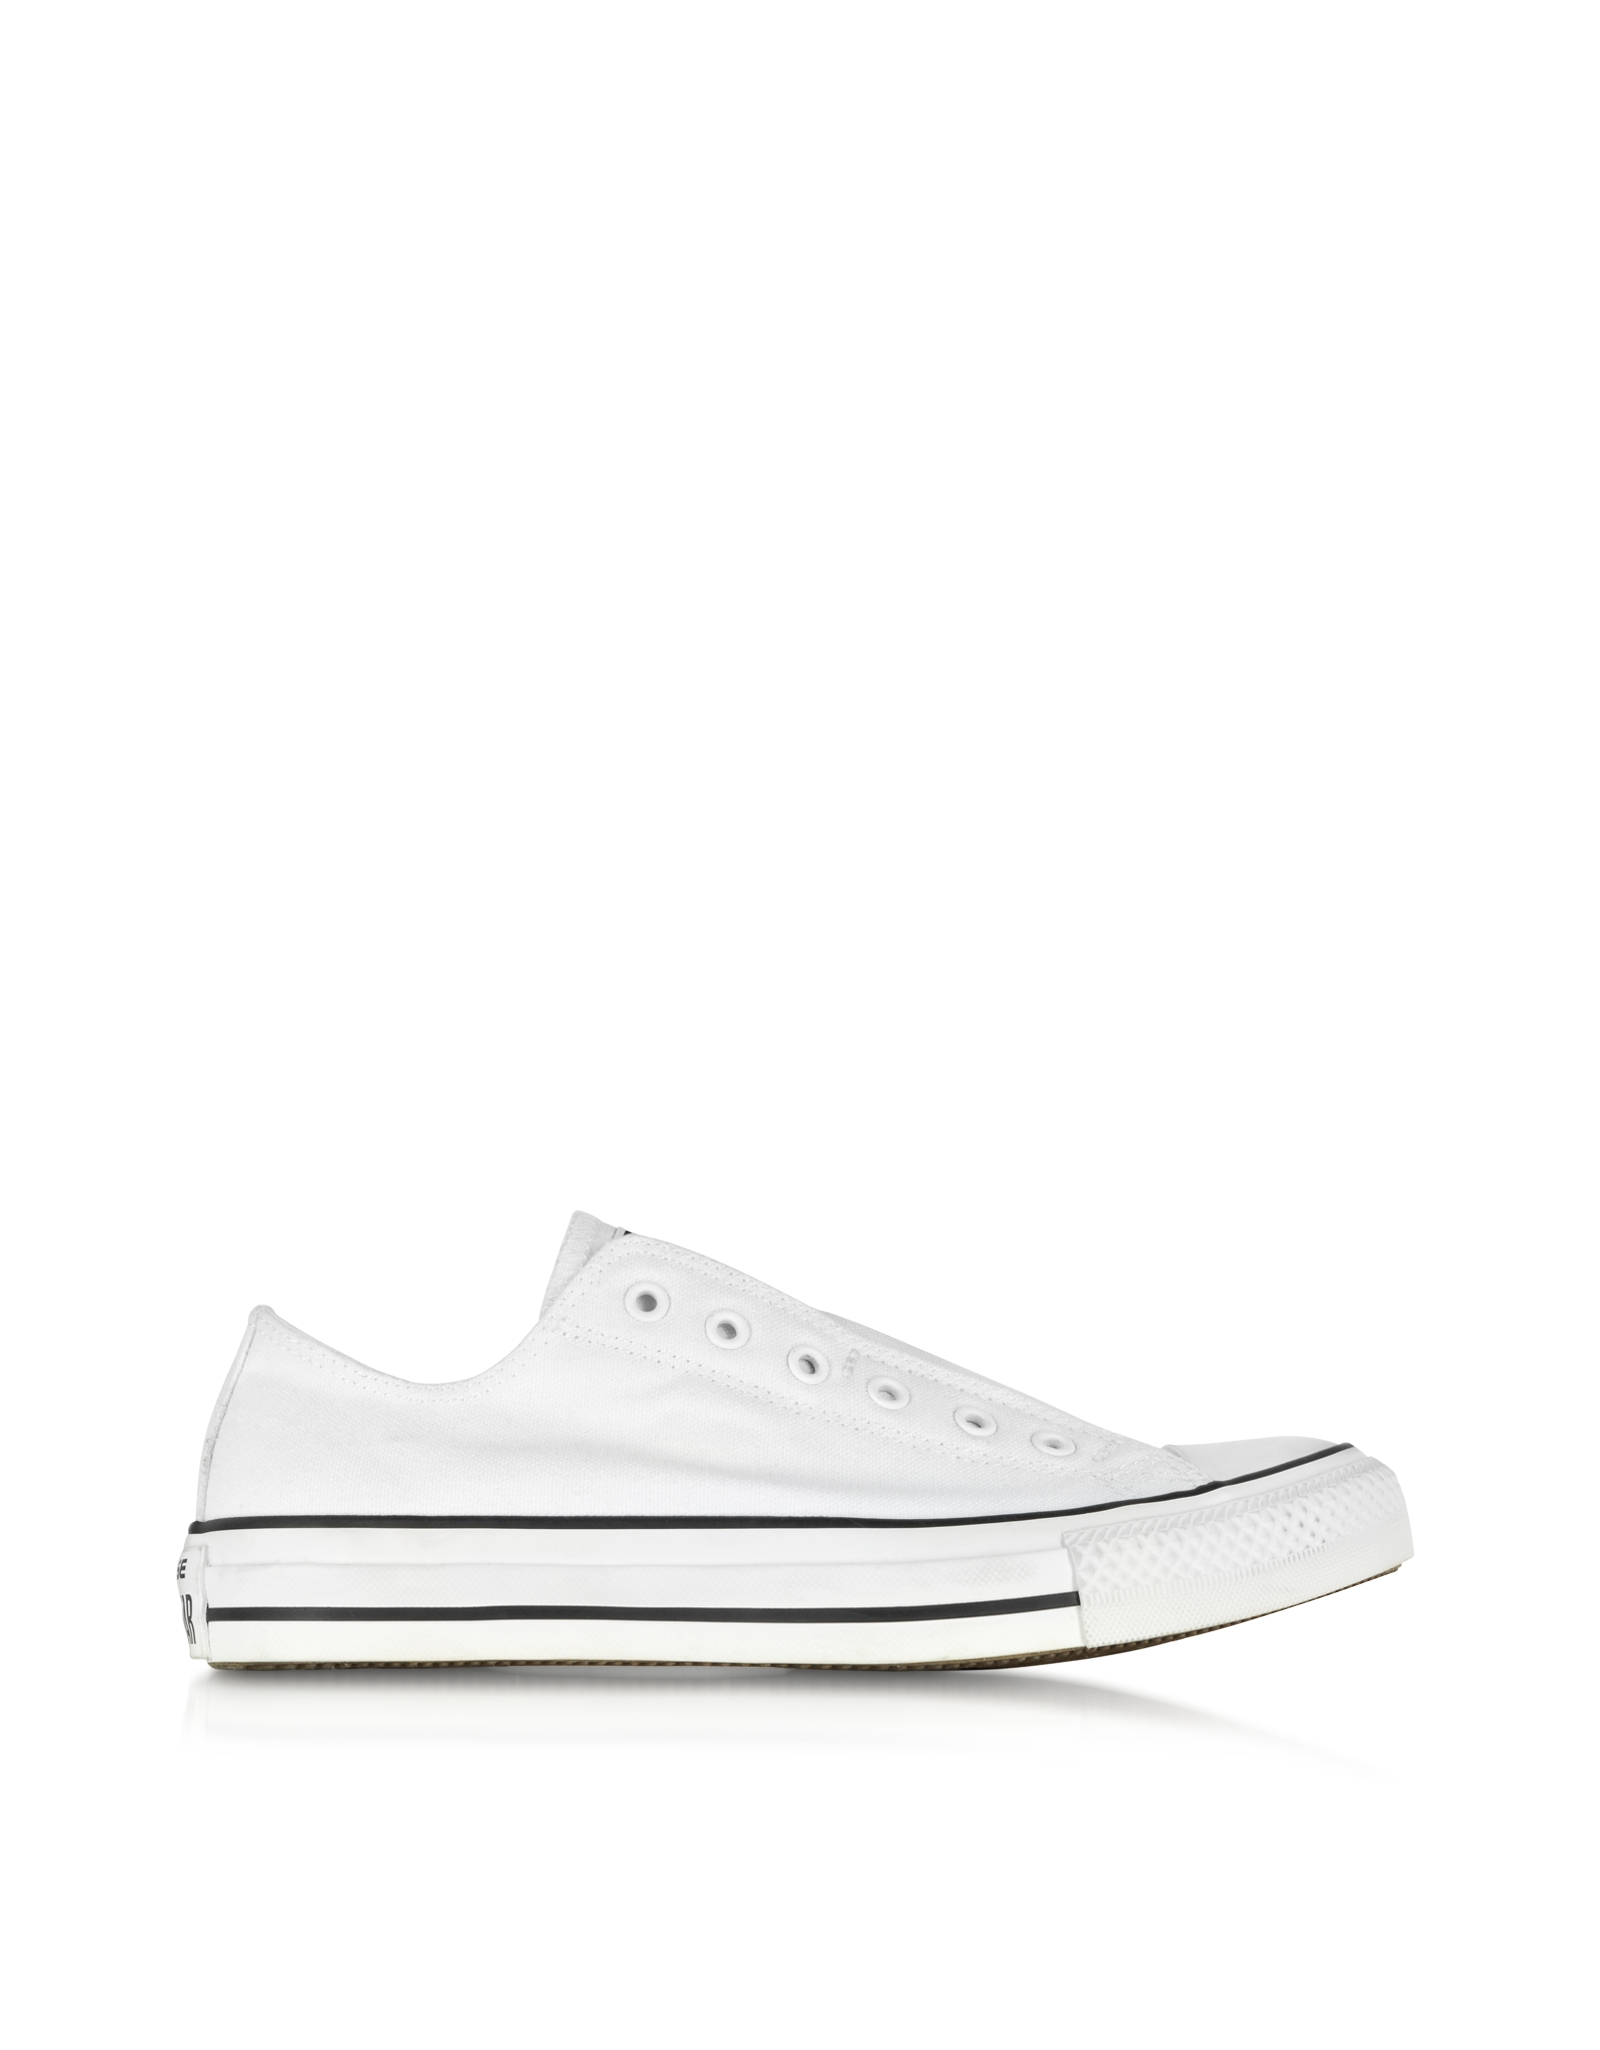 7039d36070f1 Canvas All Ox Sneaker Lyst in Converse White Optical Star Slip 5qY1gY8